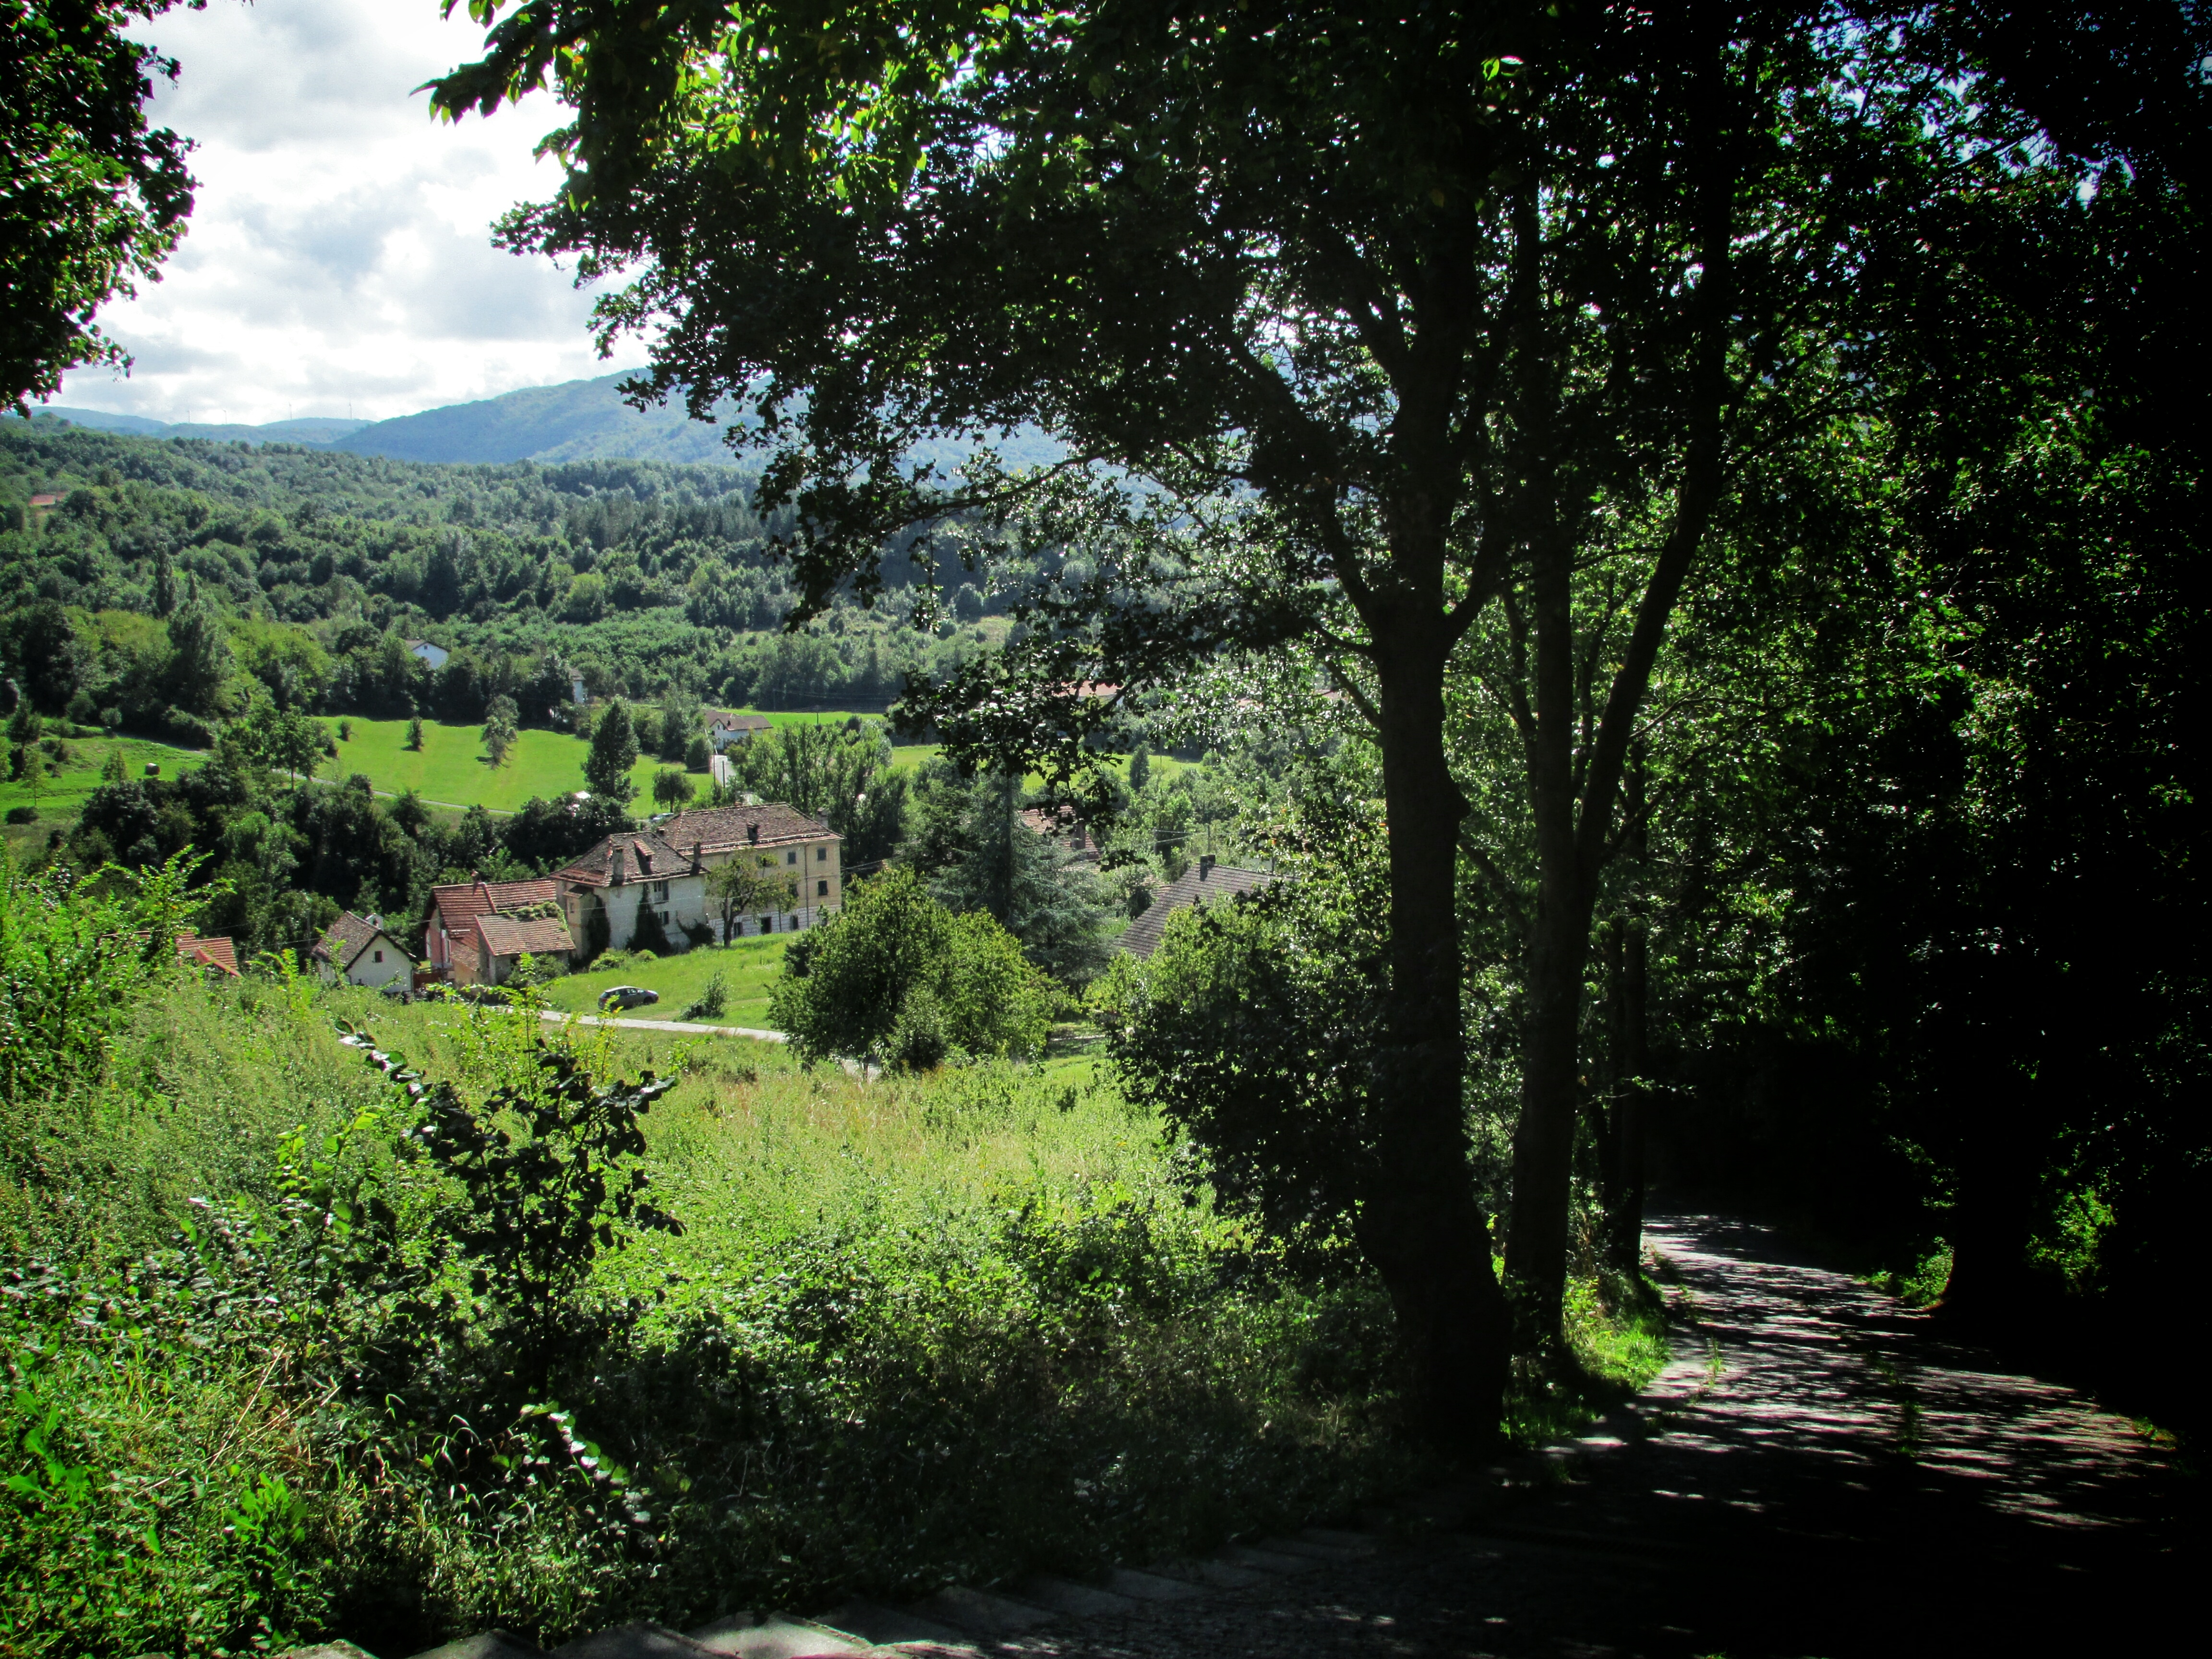 An Italian mayor is offering incentives to move to their small village in Liguria.